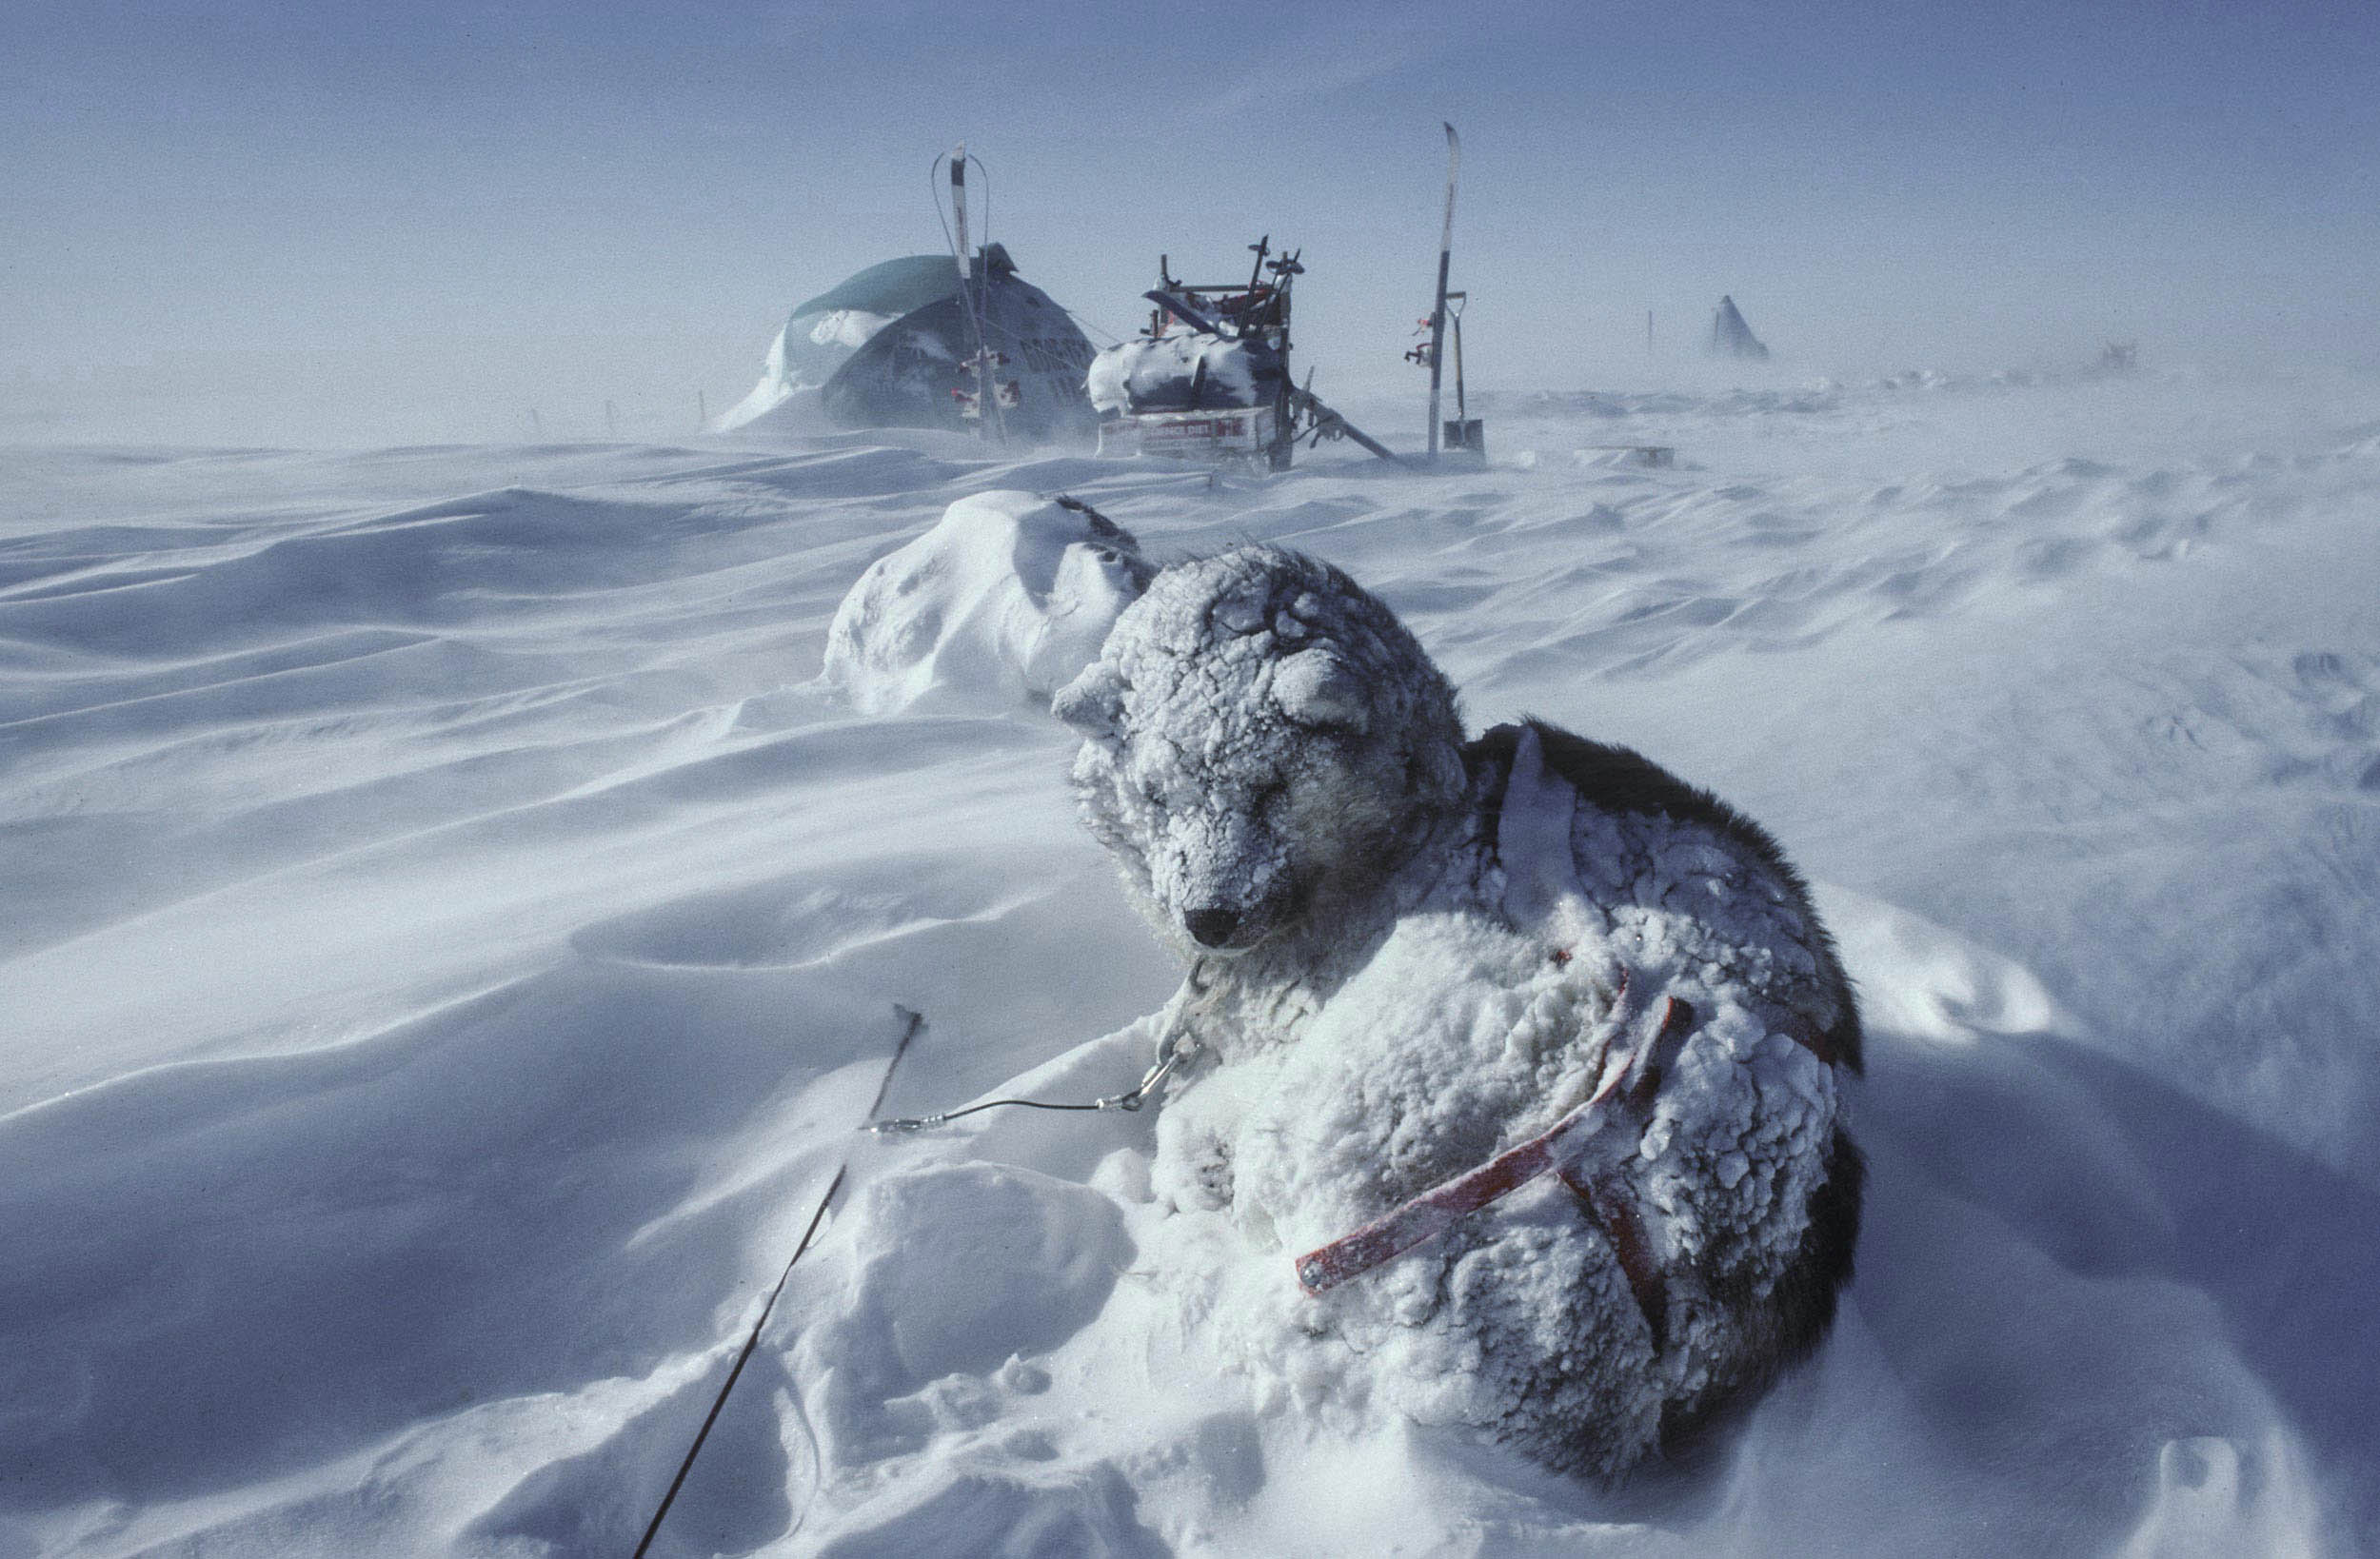 Trans-Antarctica-Expedition-dogs-waking-up